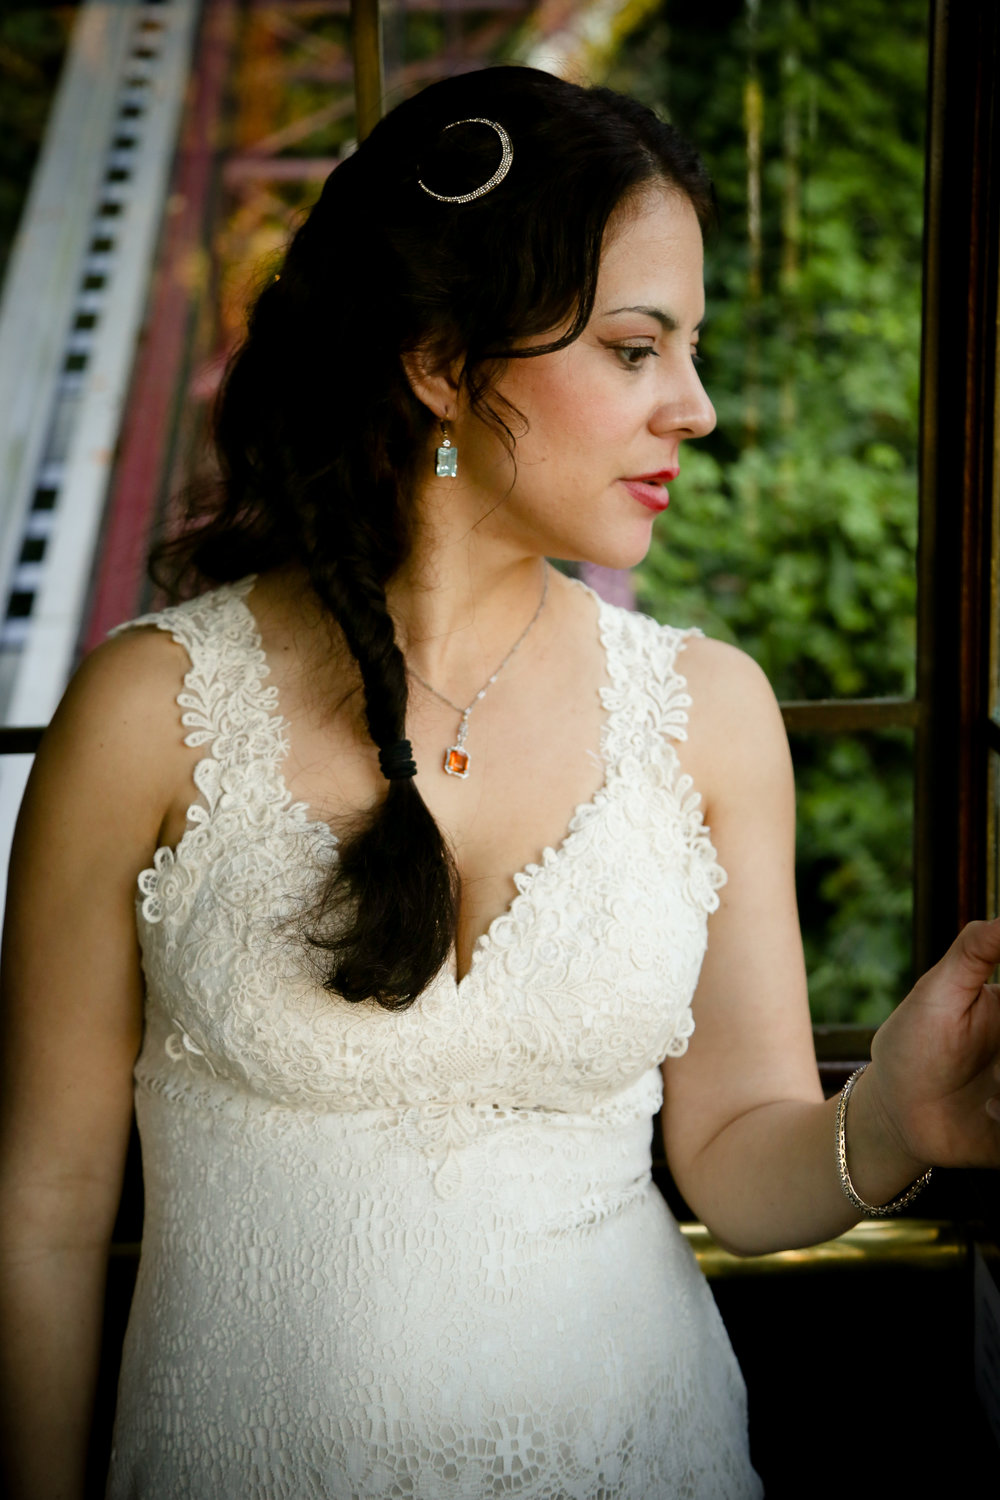 alexandra-rice-photography-shadowbrook-capitola-santa cruz-wedding-bride-portrait-trolley.jpg